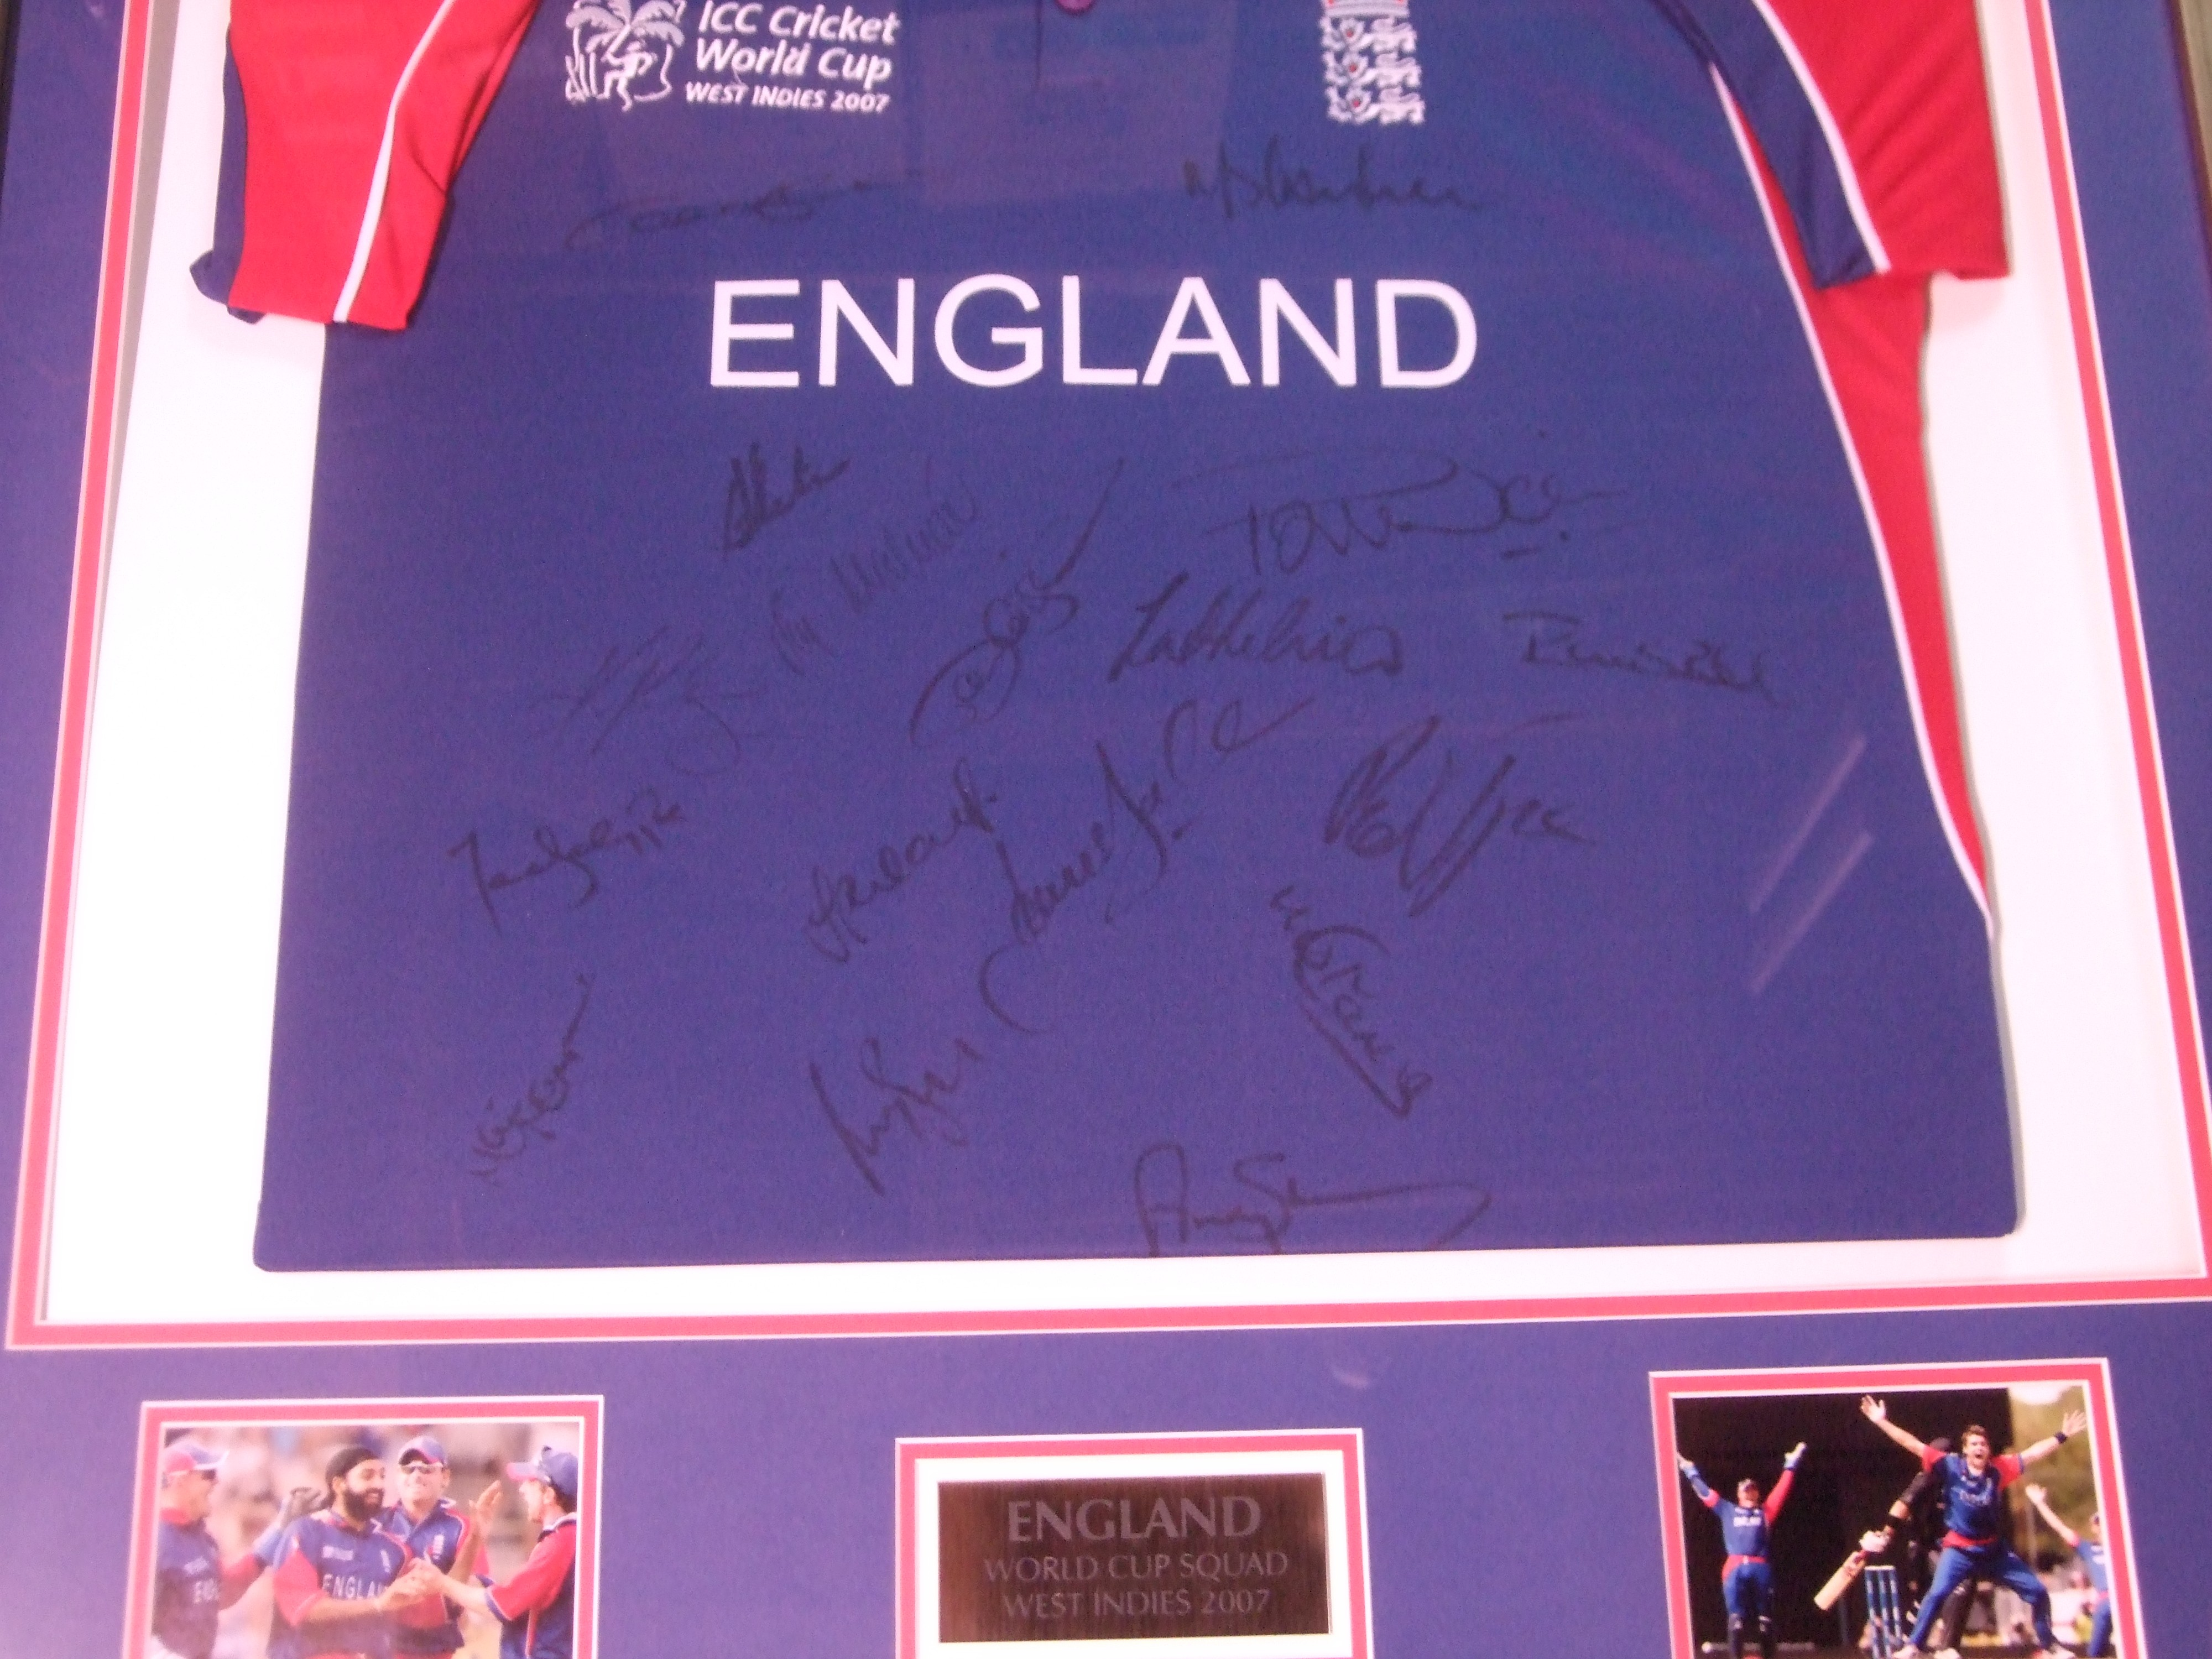 Signed England Cricket Shirt World Cup 2007